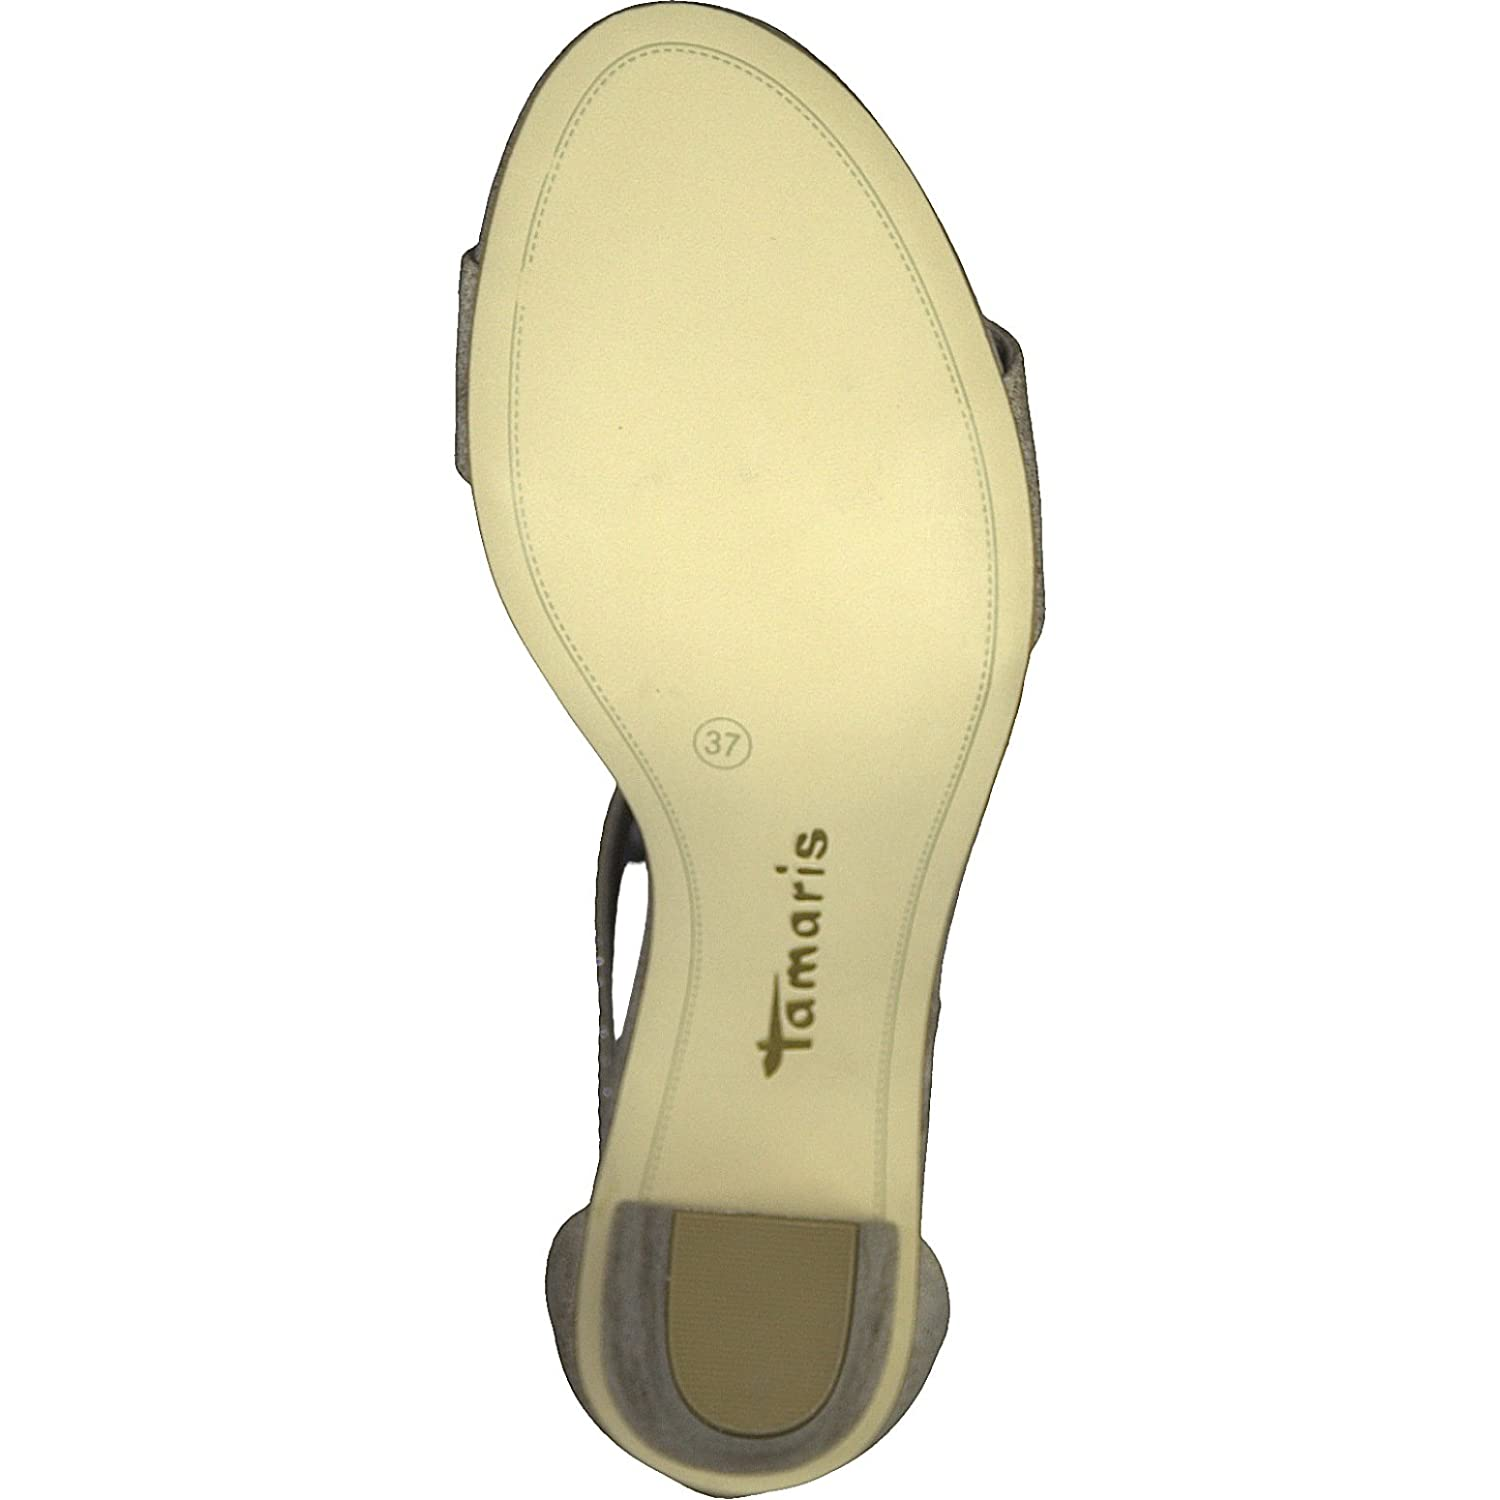 f02ef5845f0a Tamaris 28397-20-454 HEITI Ivory Womens Heeled Sandals  Amazon.co.uk  Shoes    Bags